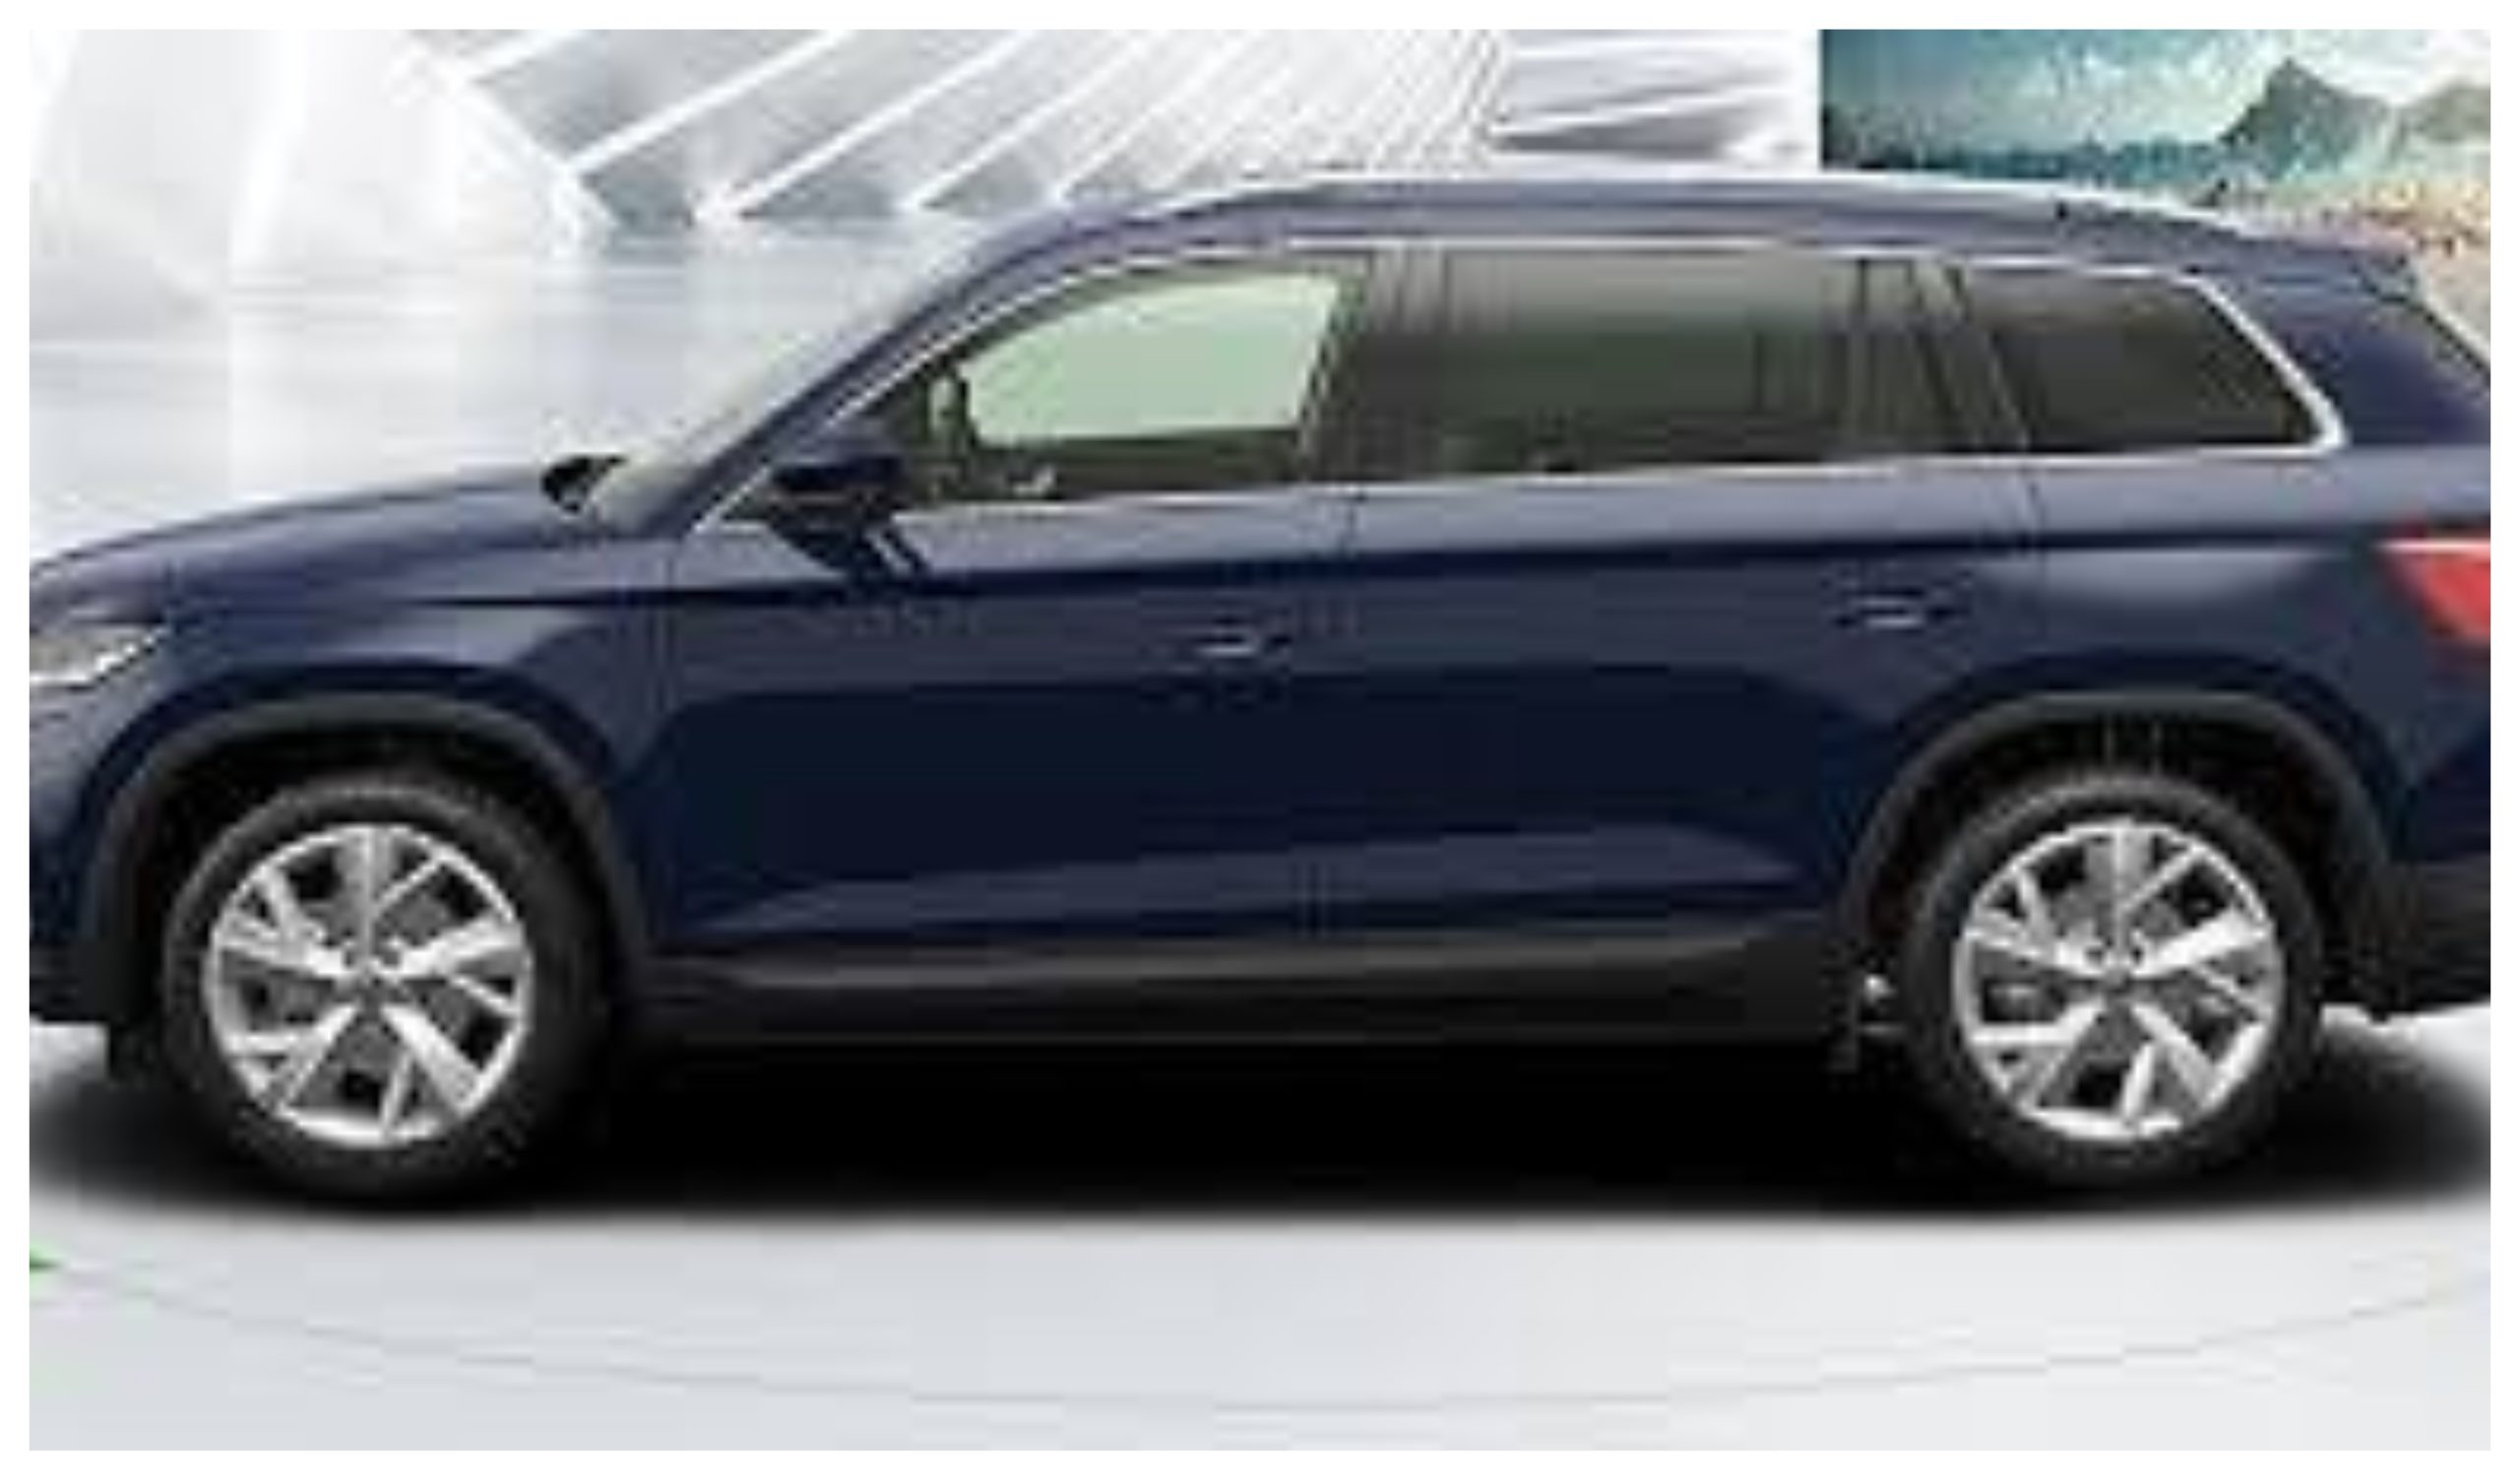 The car is a blue Skoda Kodiaq, similar to the one pictured.